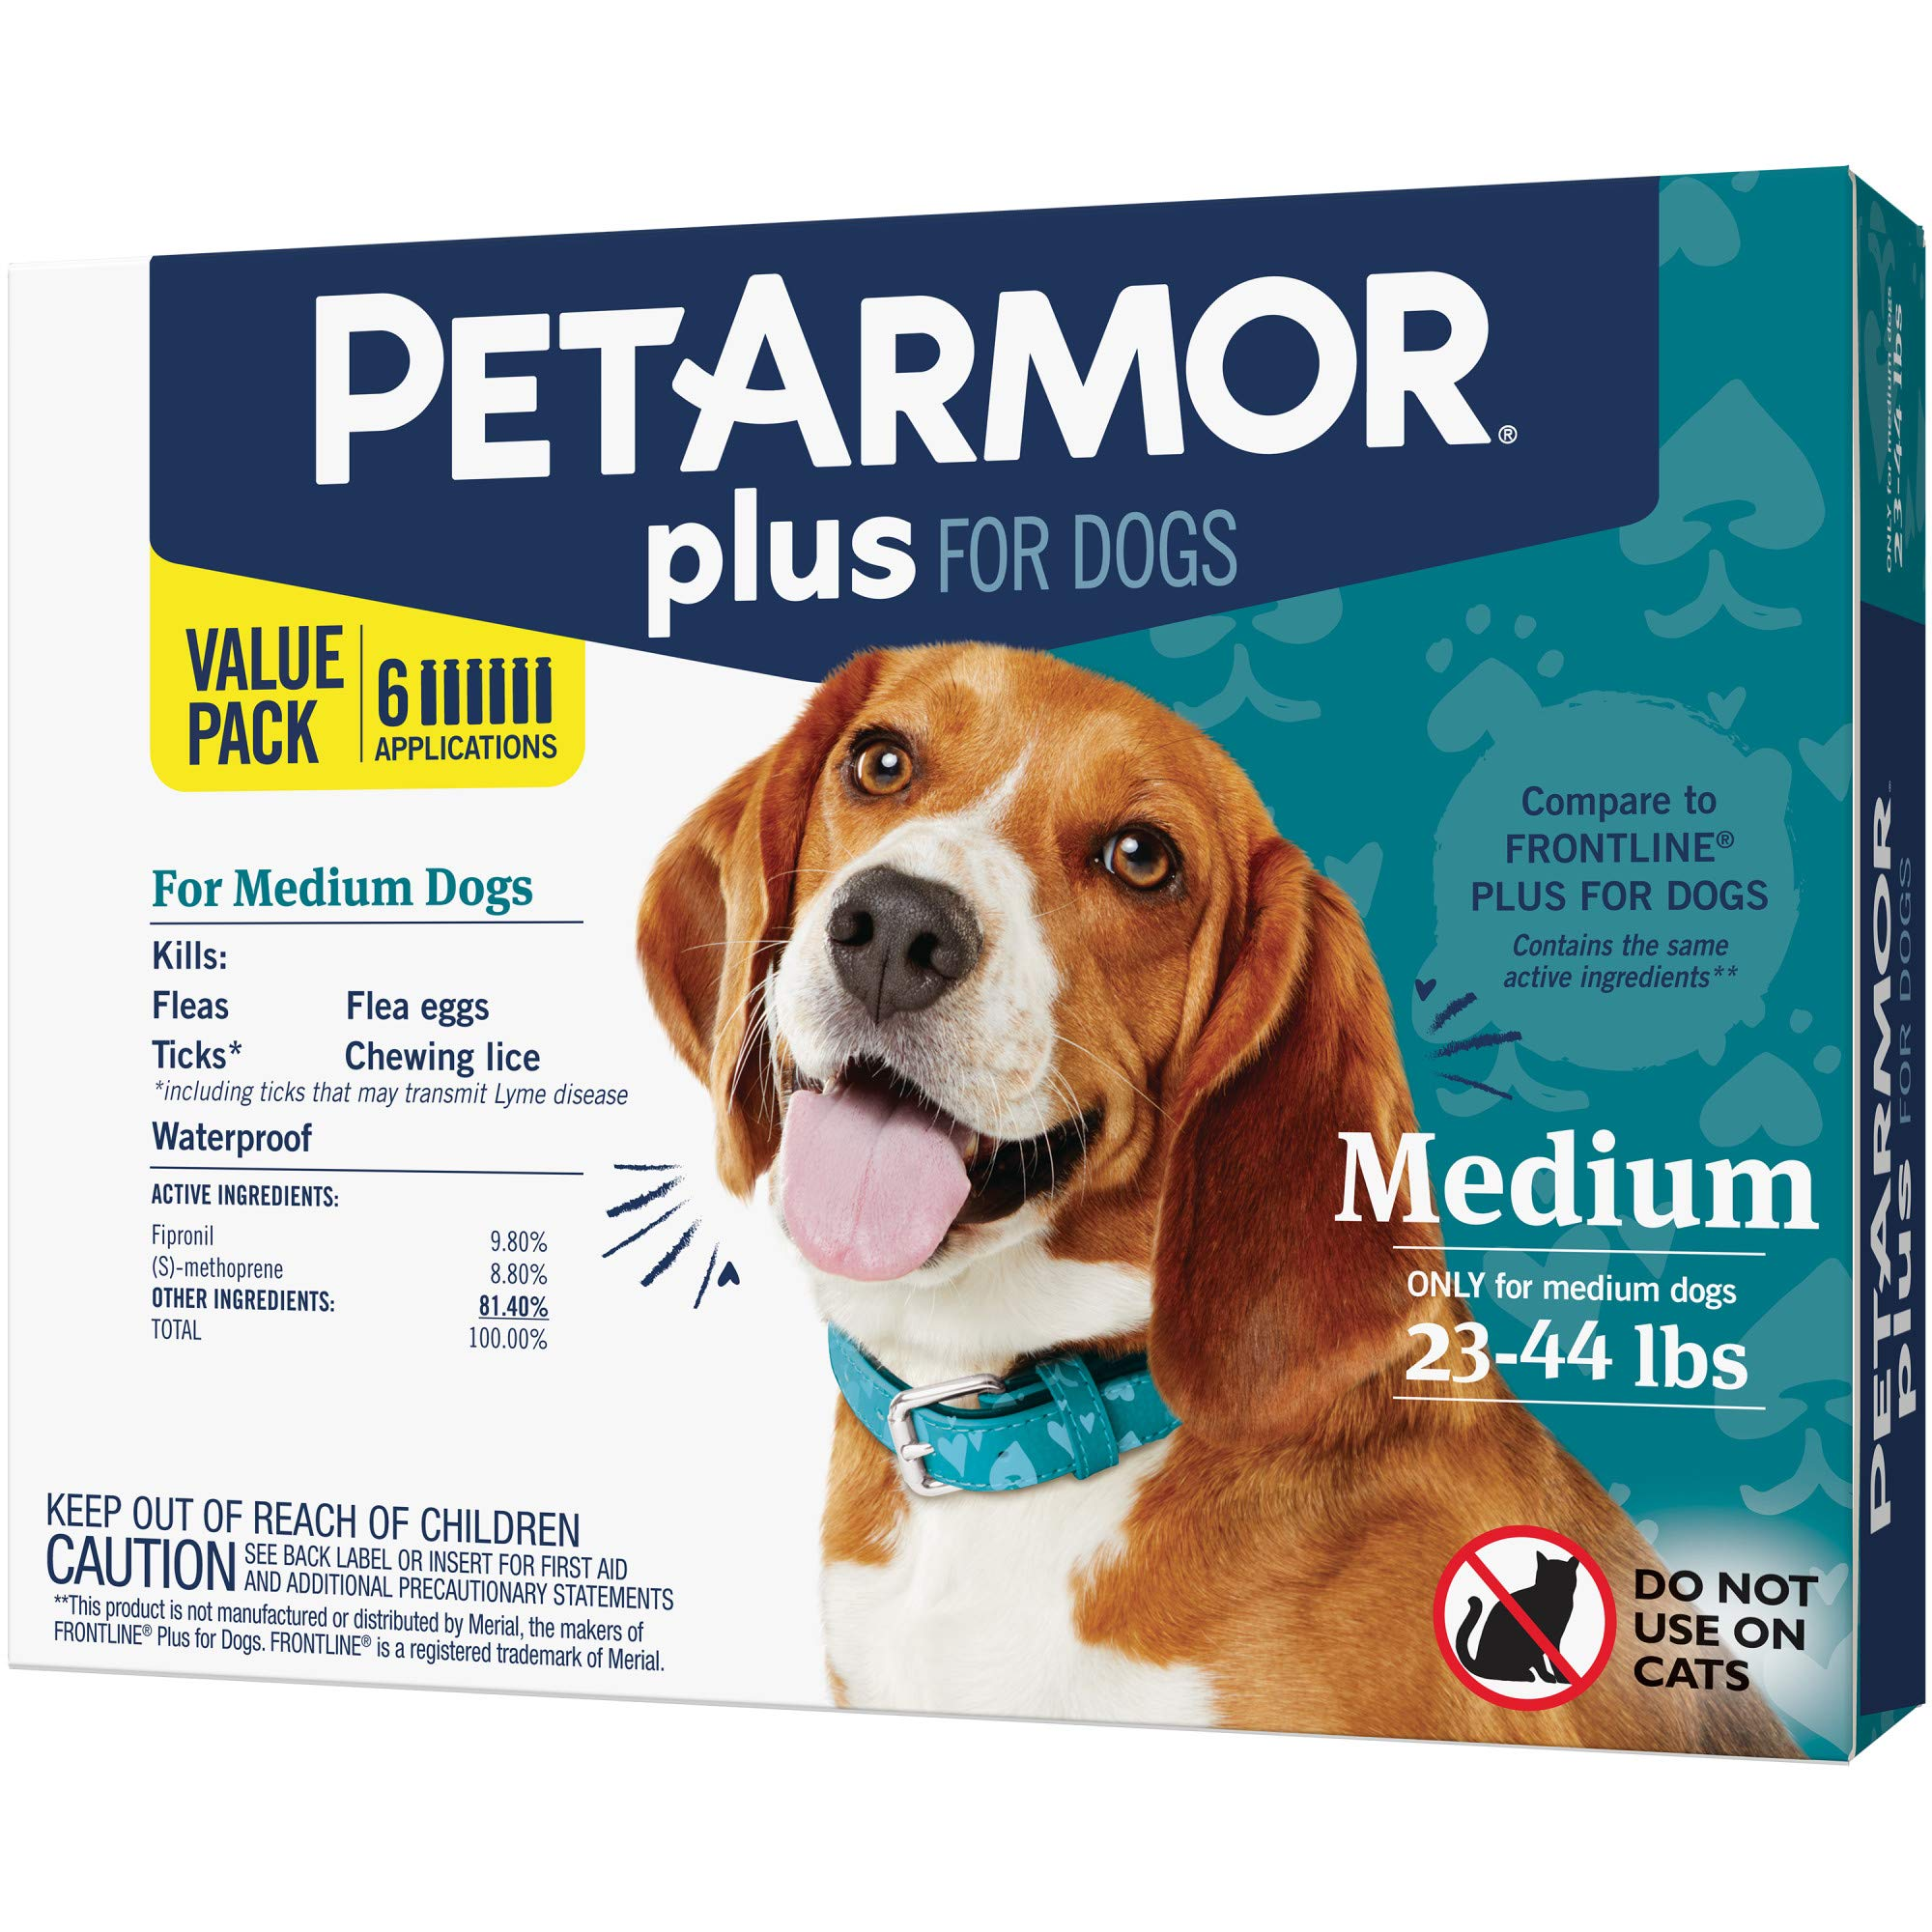 PETARMOR Plus for Dogs Flea and Tick Prevention for Medium Dogs (23-44 Pounds), Long-Lasting & Fast-Acting Topical Dog Flea Treatment by PETARMOR